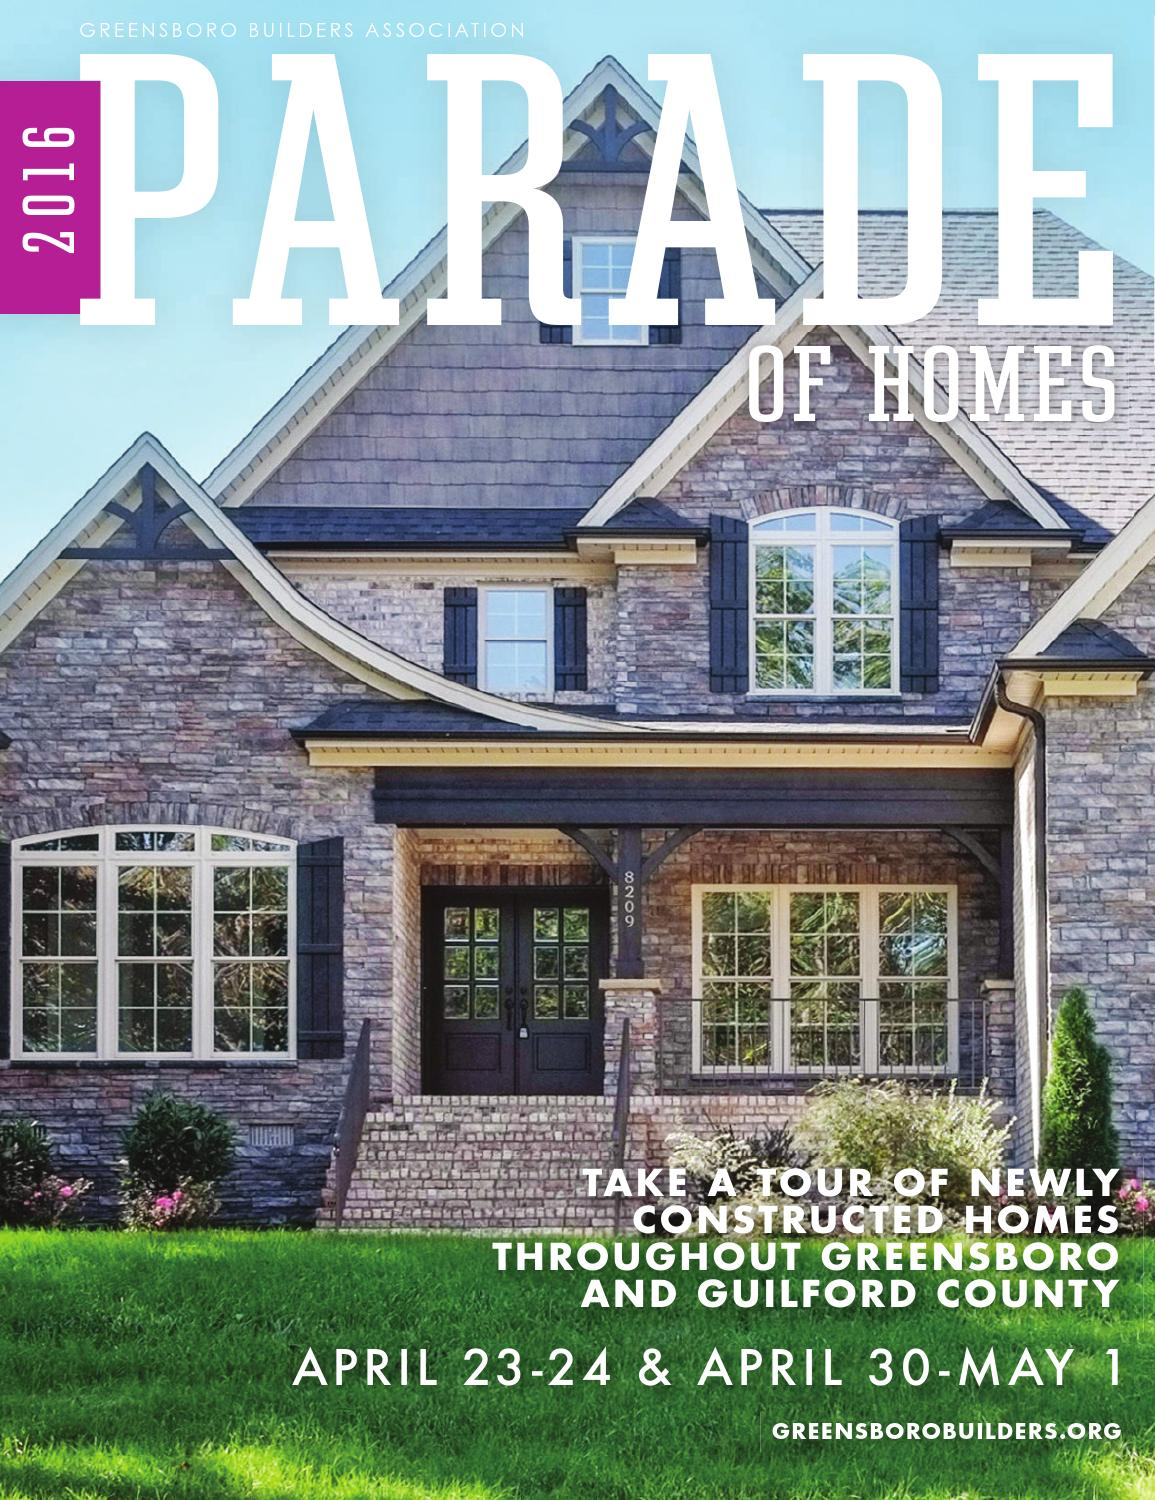 2016 spring parade of homes by greensboro builders association issuu